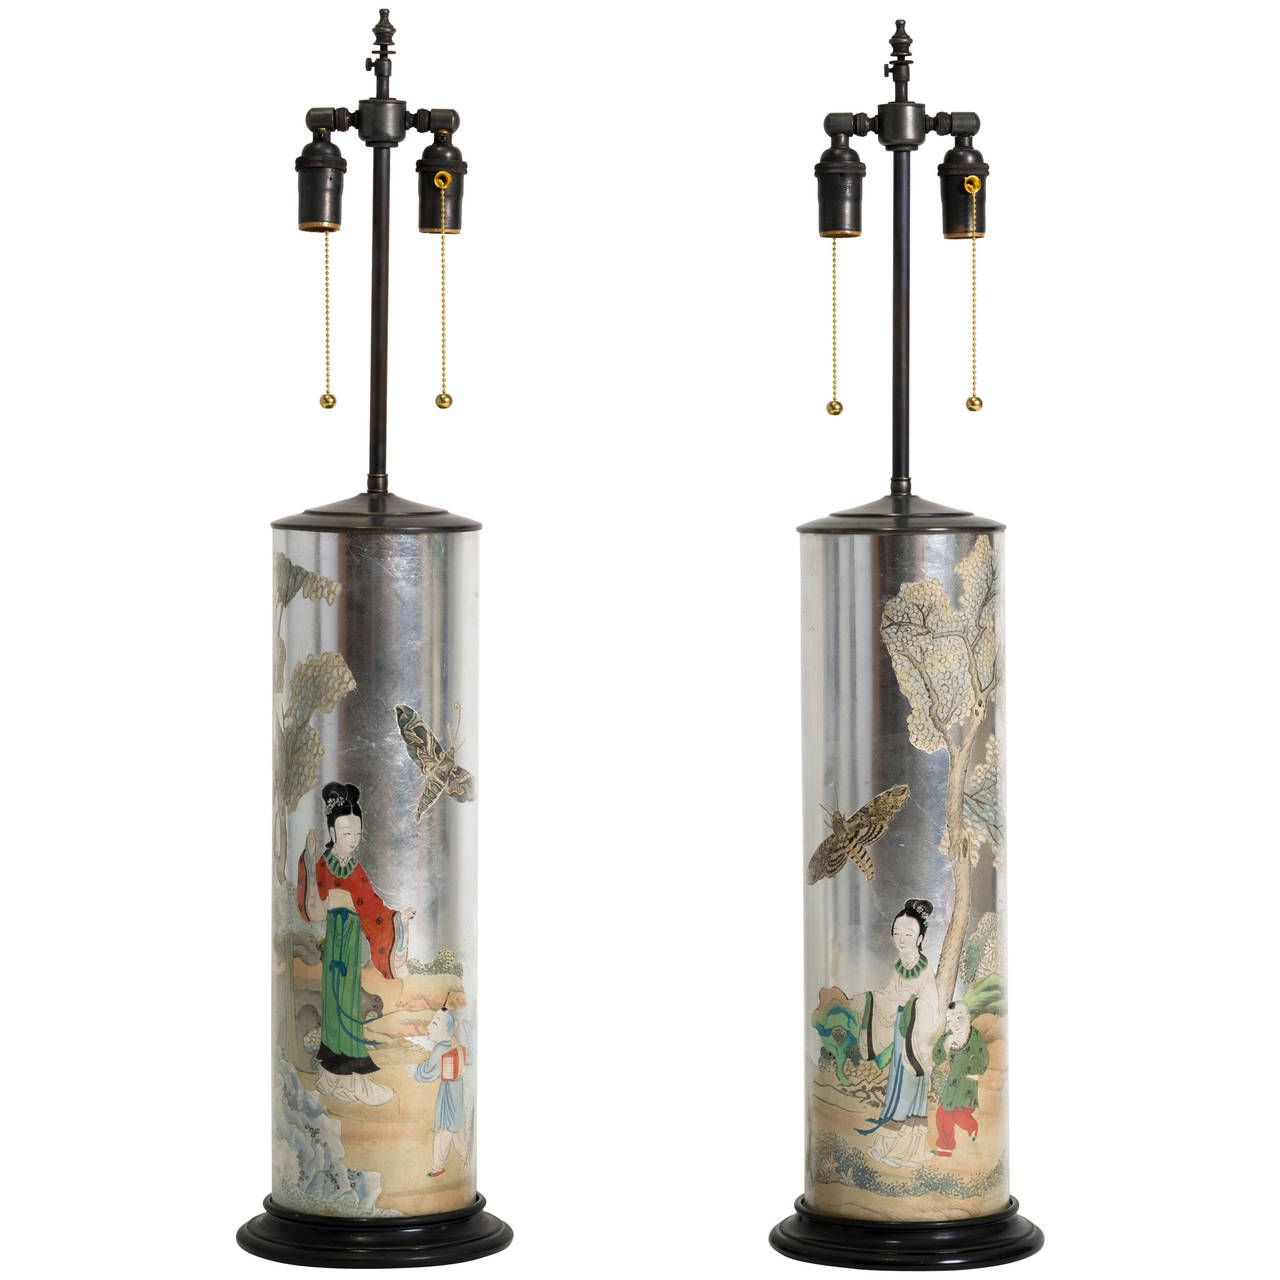 Glomis and decoupage chinoiserie glass table lamps decoupage glomis and decoupage chinoiserie glass table lamps arubaitofo Choice Image